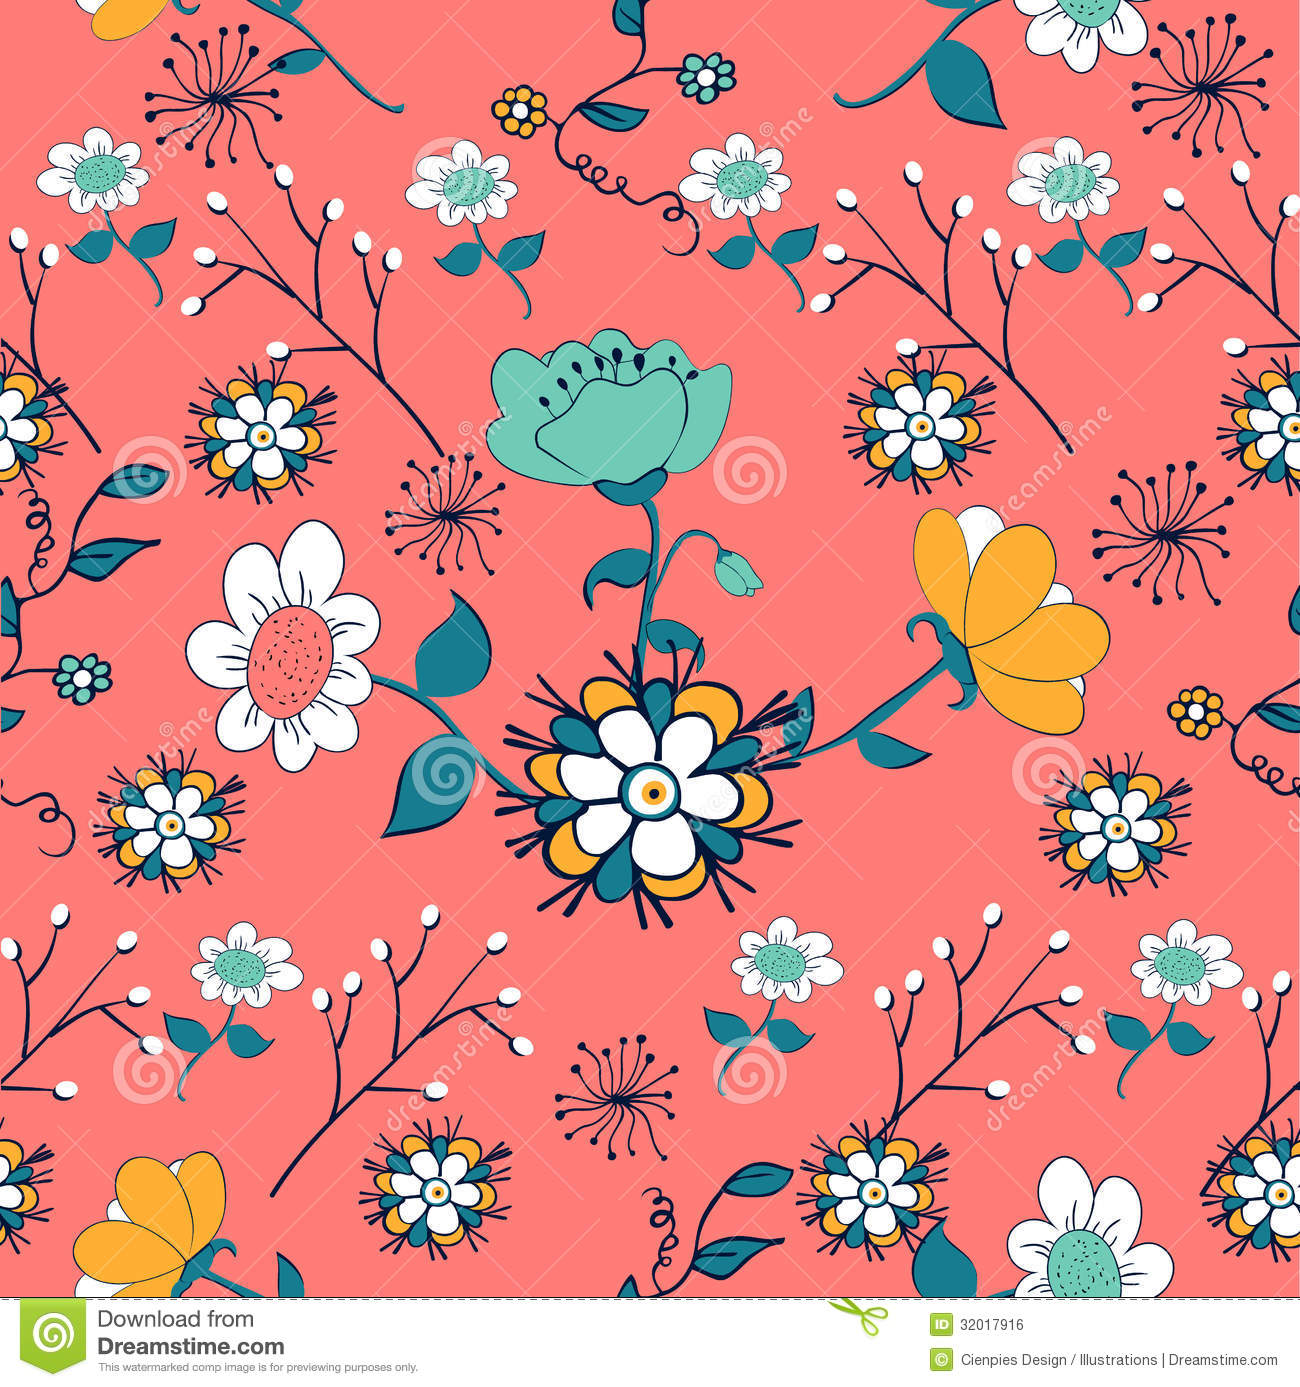 Vintage Flowers Pattern Royalty Free Stock Image